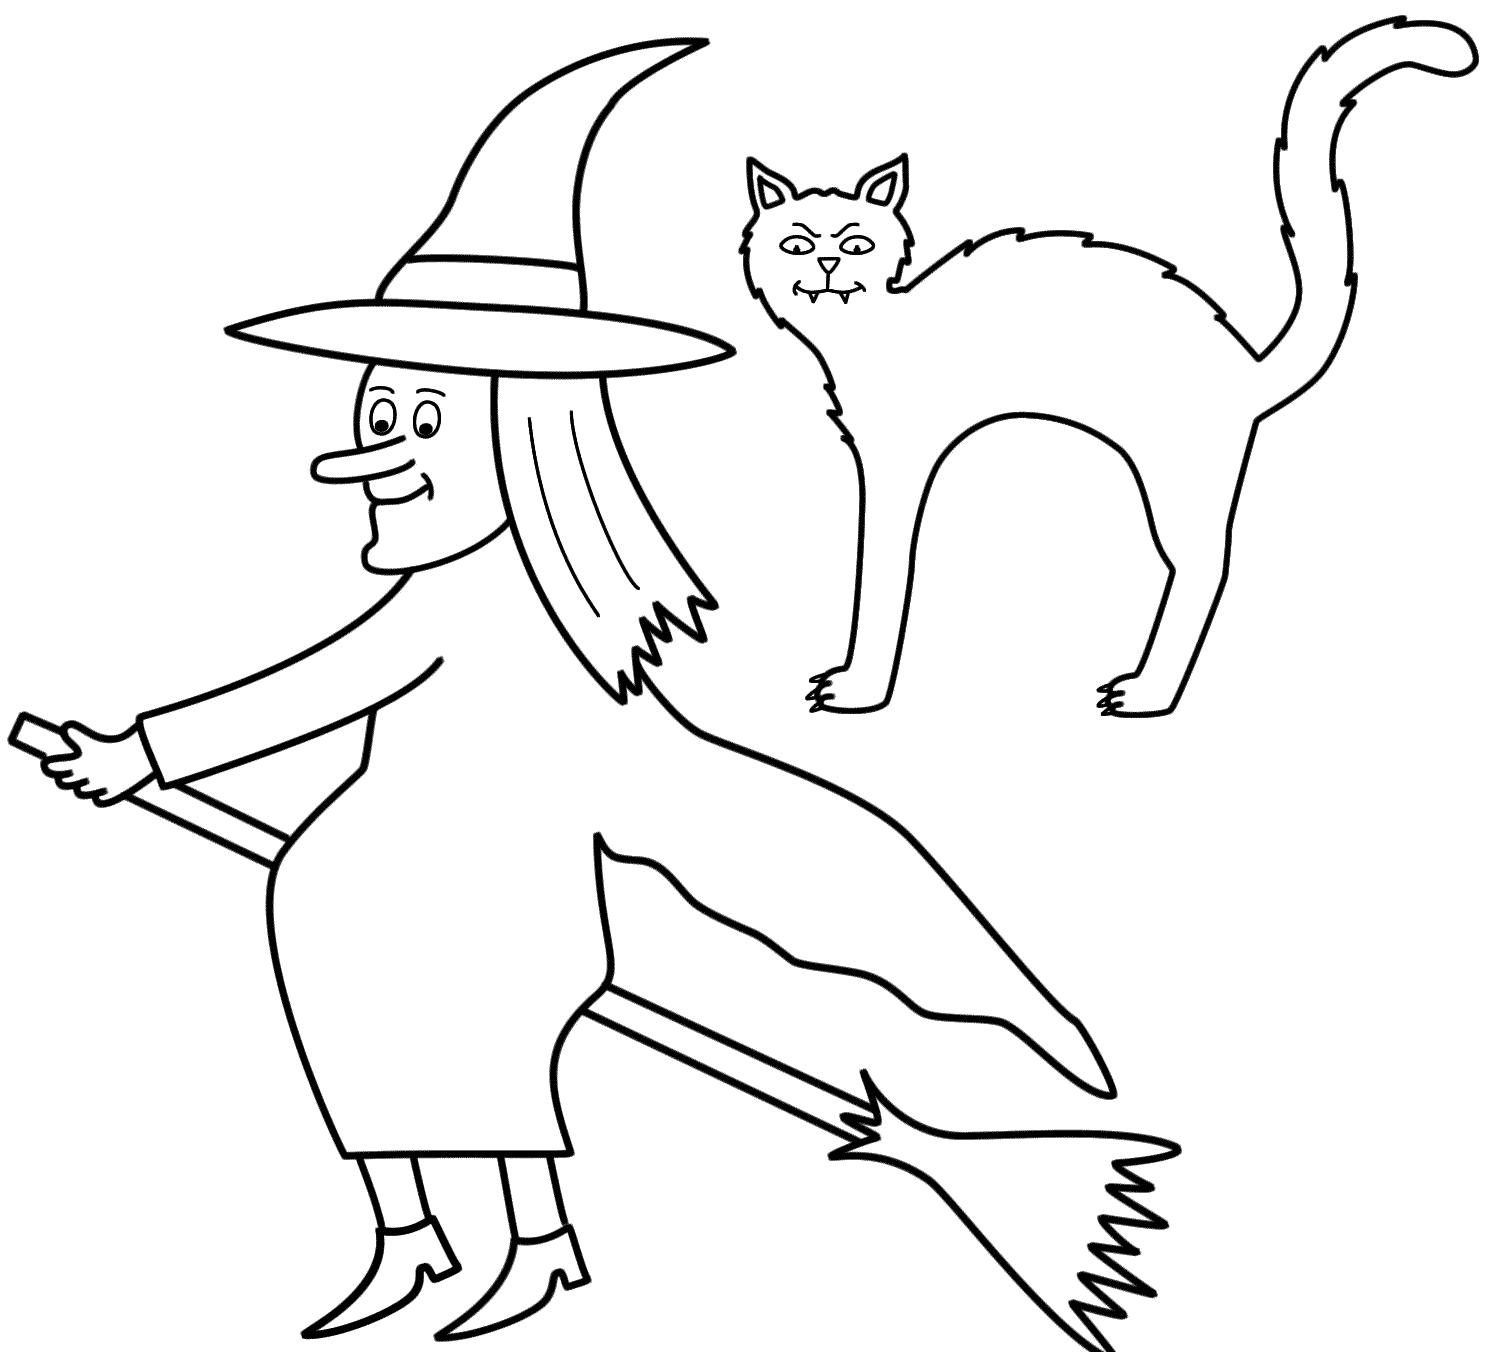 1490x1352 Halloween Flying Witch Coloring Pages